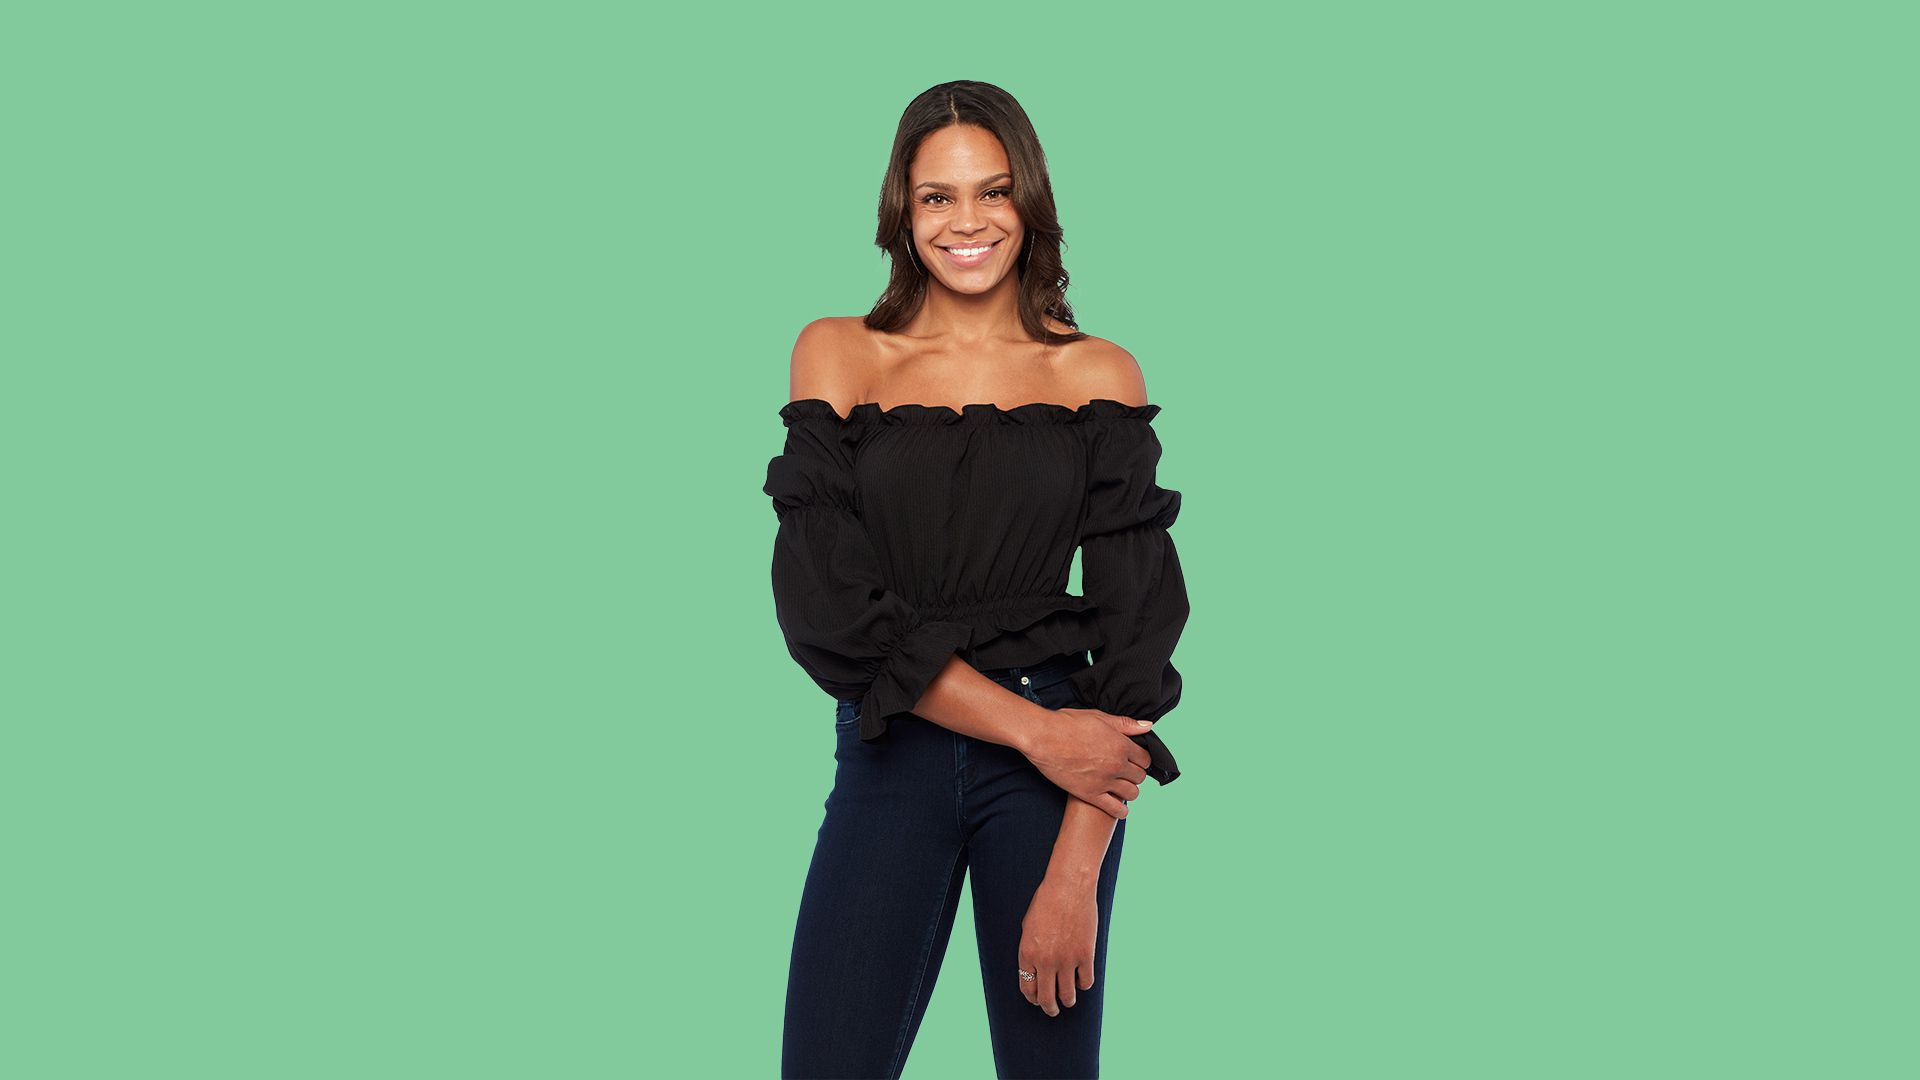 Michelle Young, the upcoming Bachelorette